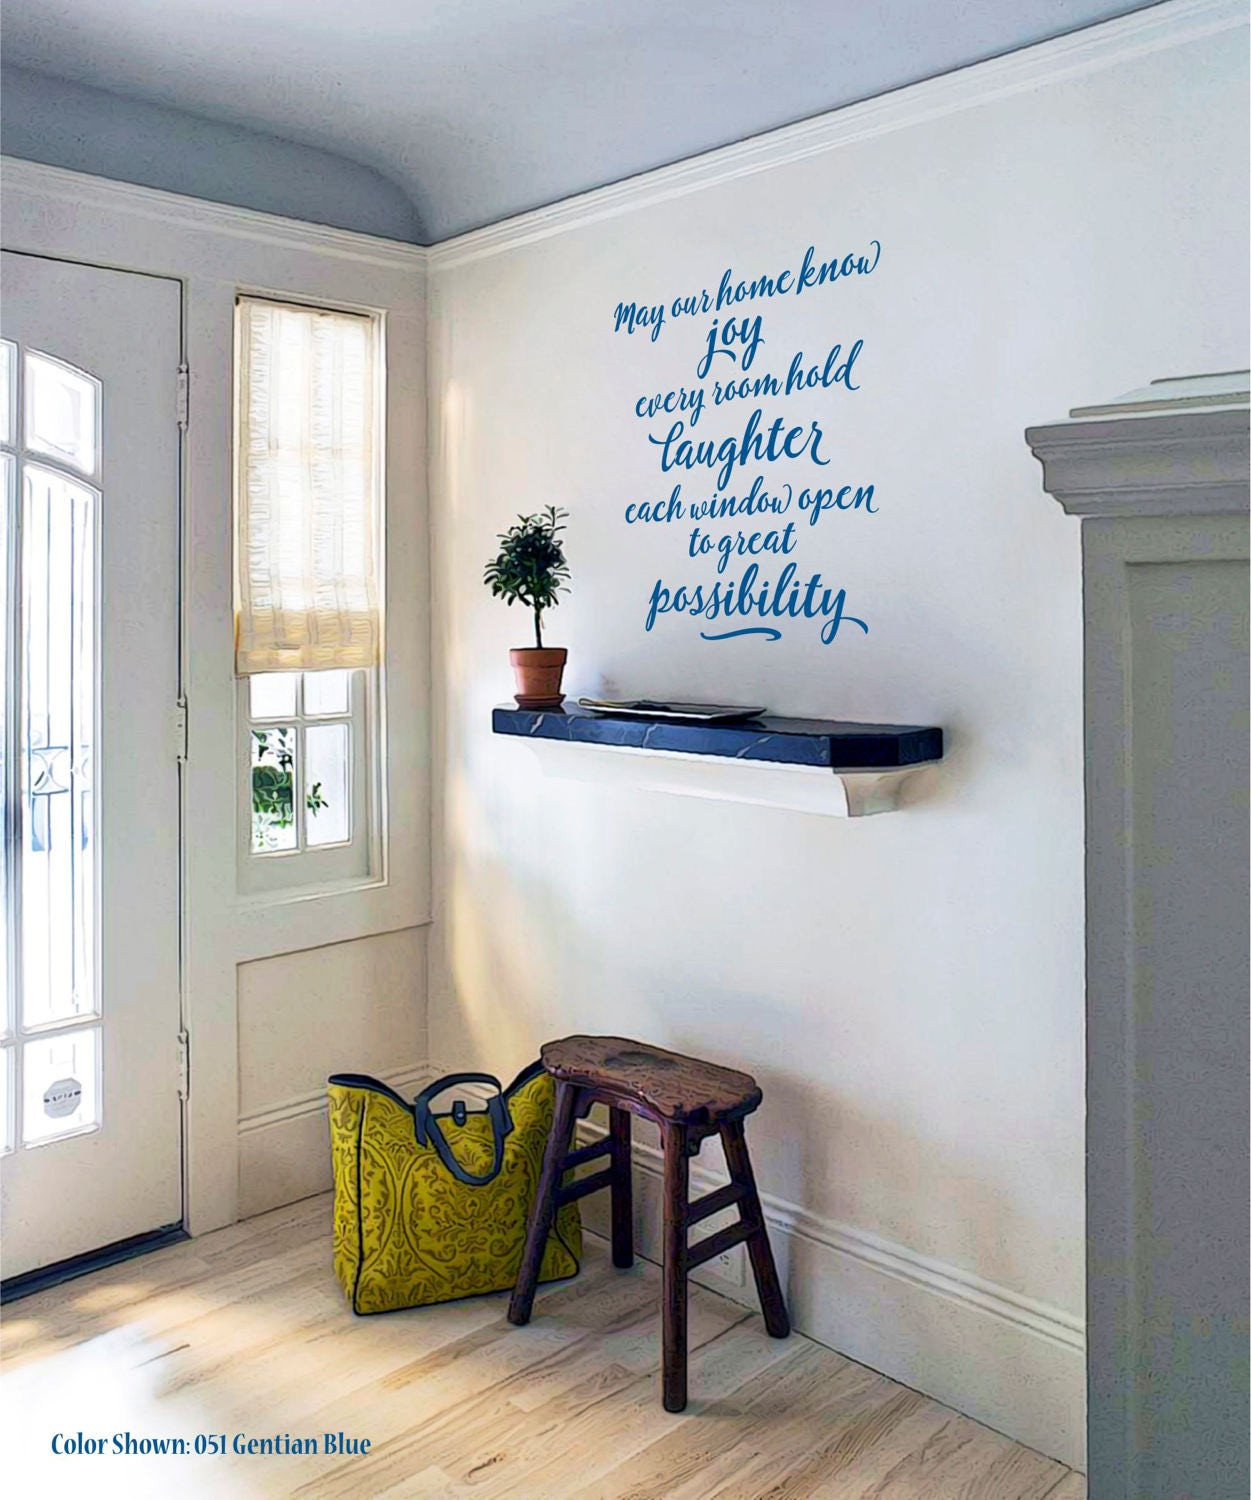 May Our Home Know Joy Vinyl Wall Quotes Wall Quote Decal - Custom vinyl wall decals sayings for family roomitems similar to entry wall quote family wall decals home family